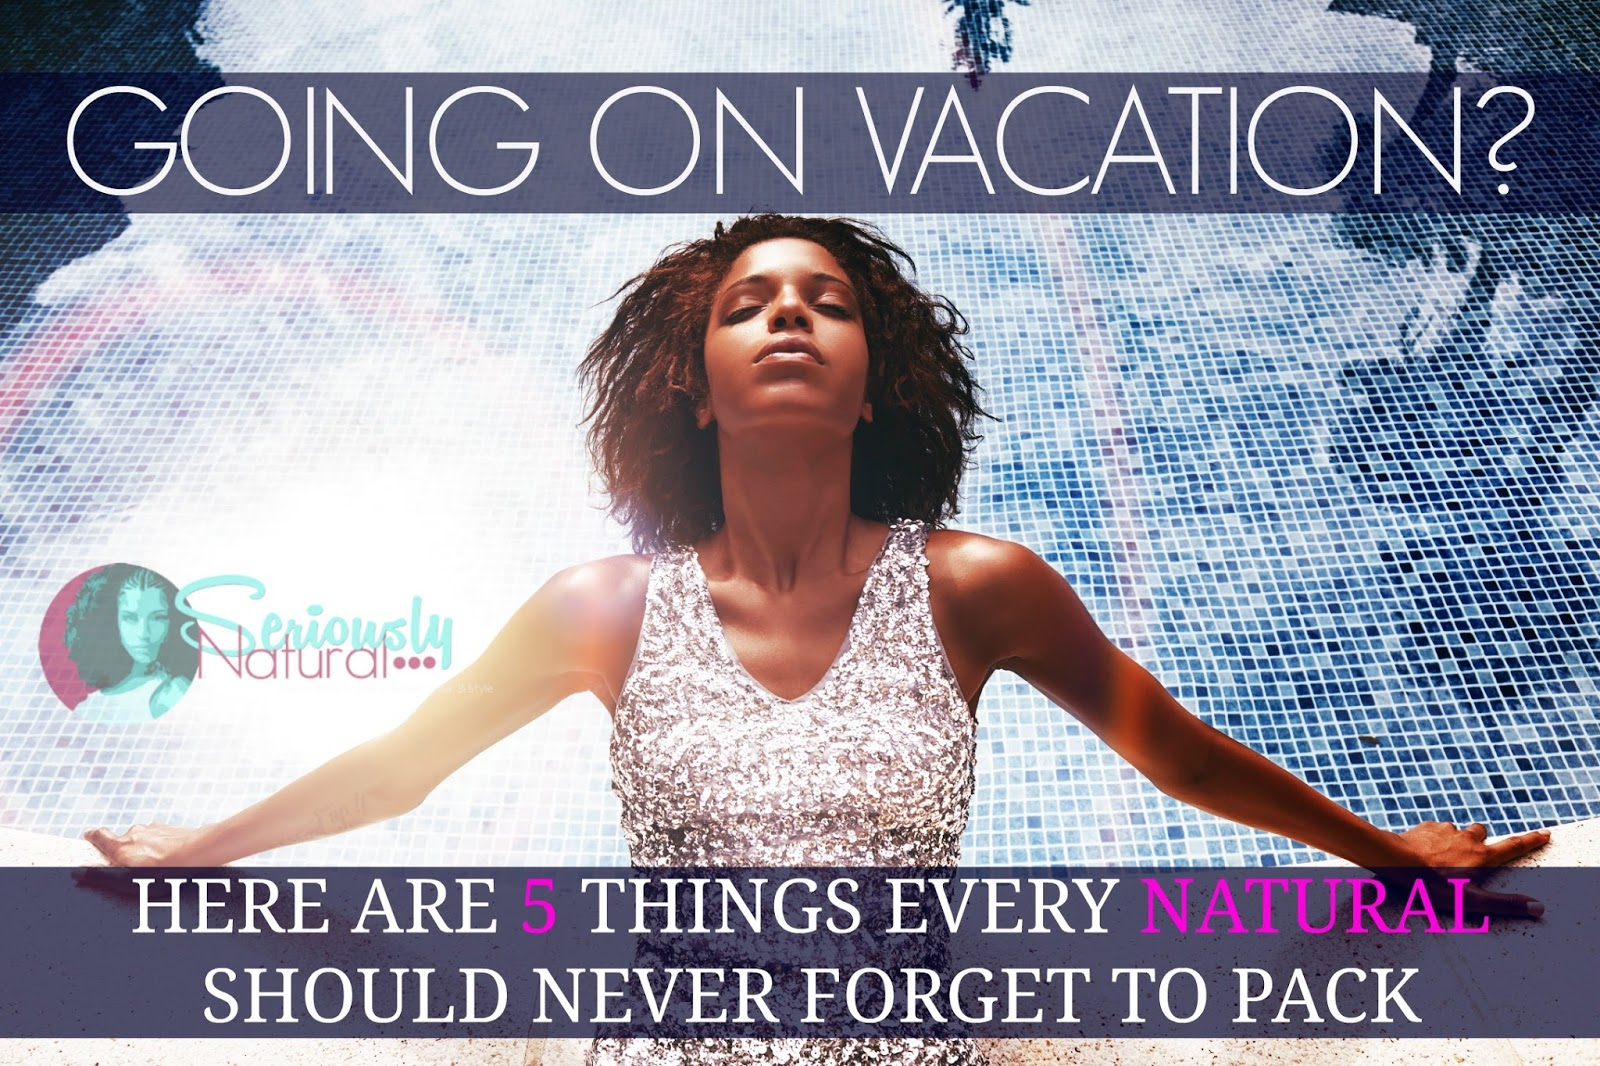 5 THINGS EVERY NATURAL SHOULD NEVER FORGET TO PACK